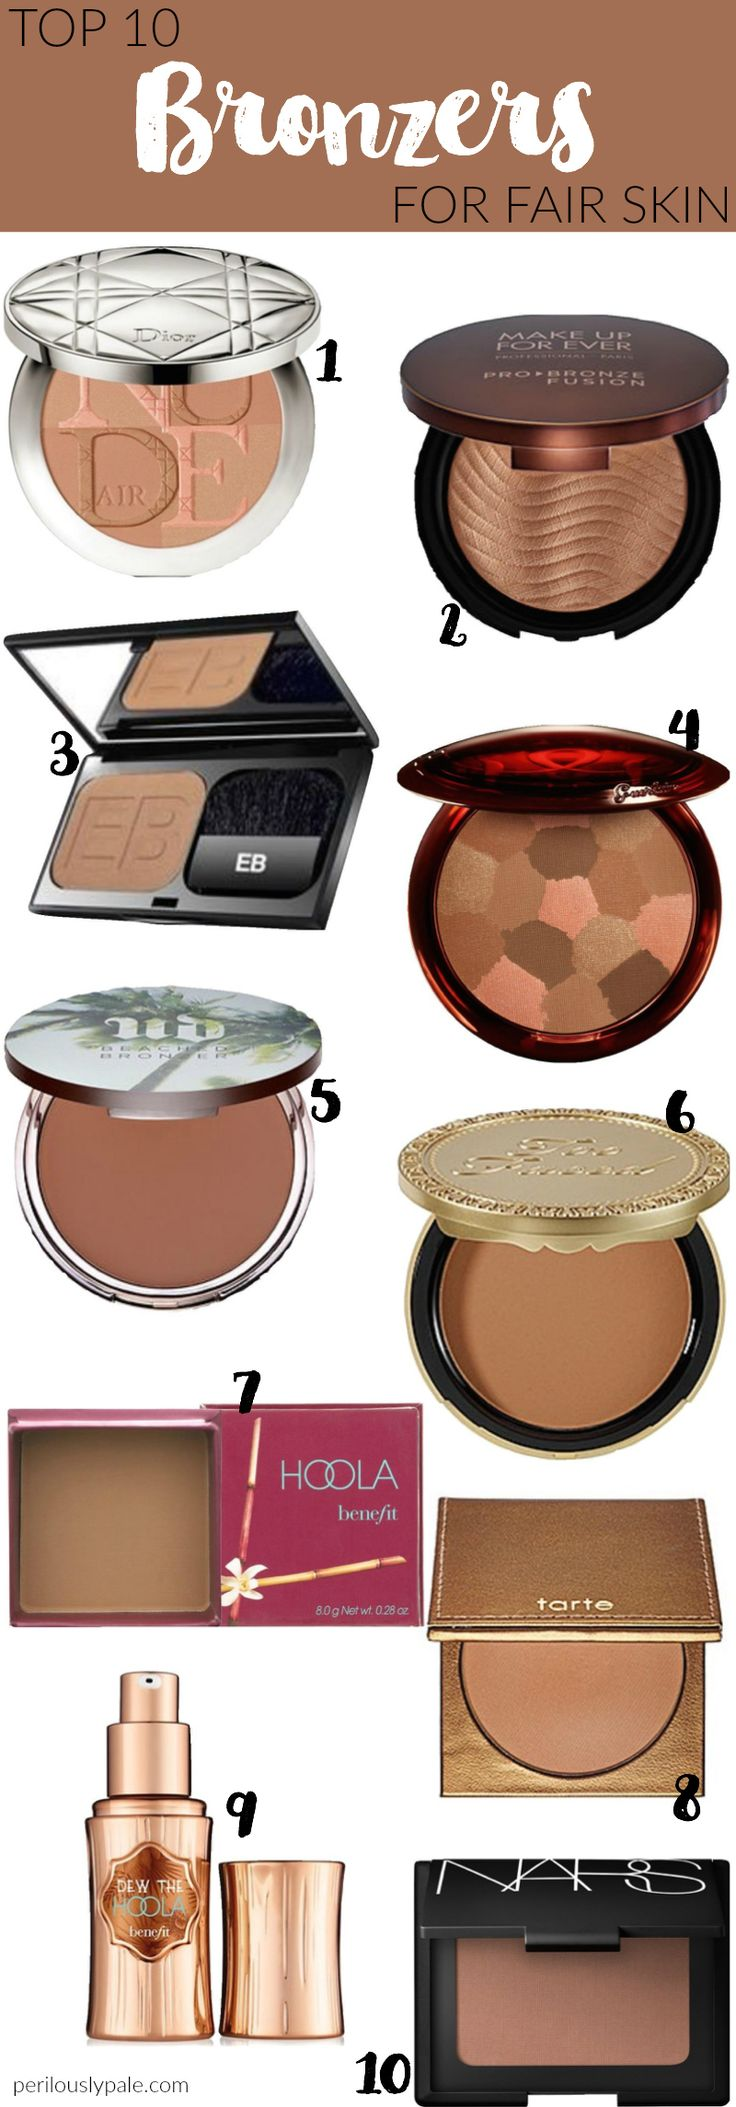 Top 10 Bronzers for Fair Skin